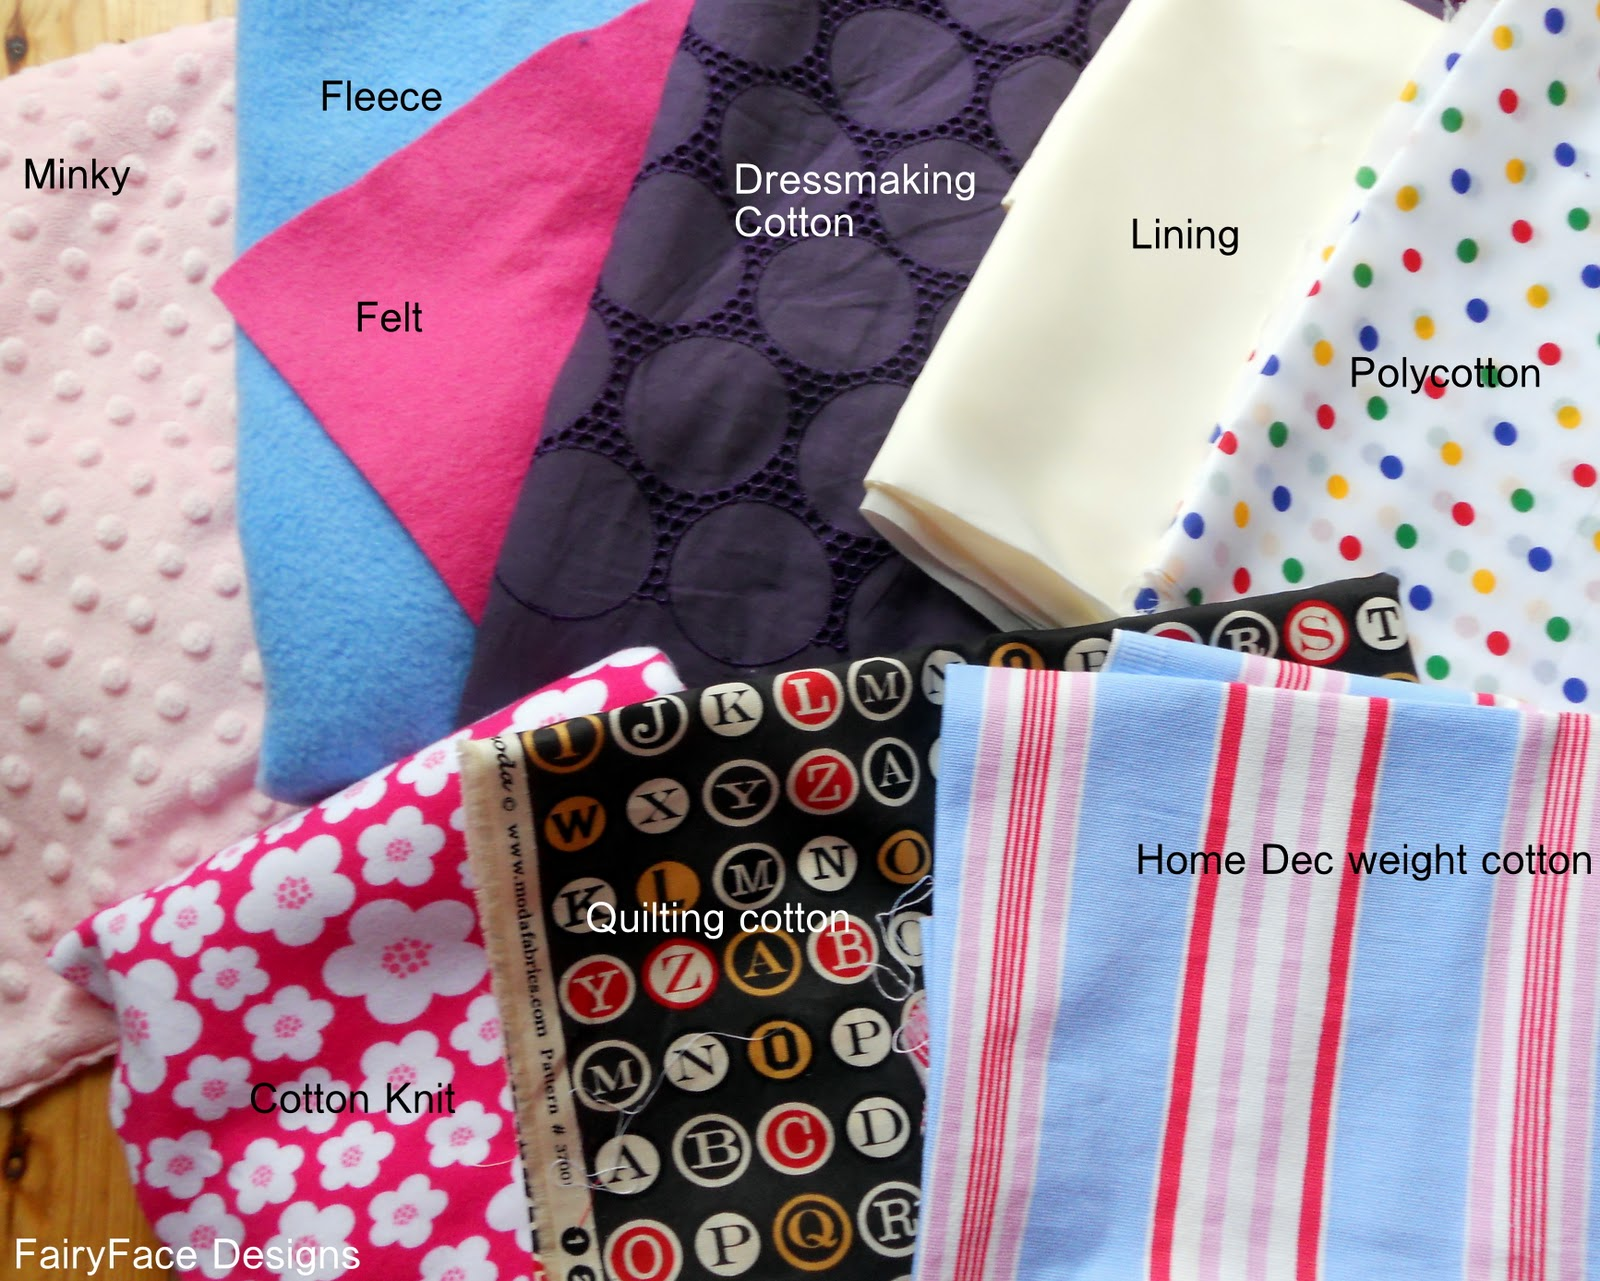 FairyFace Designs: {Sew} Get Started: Sewing Basics Part 1